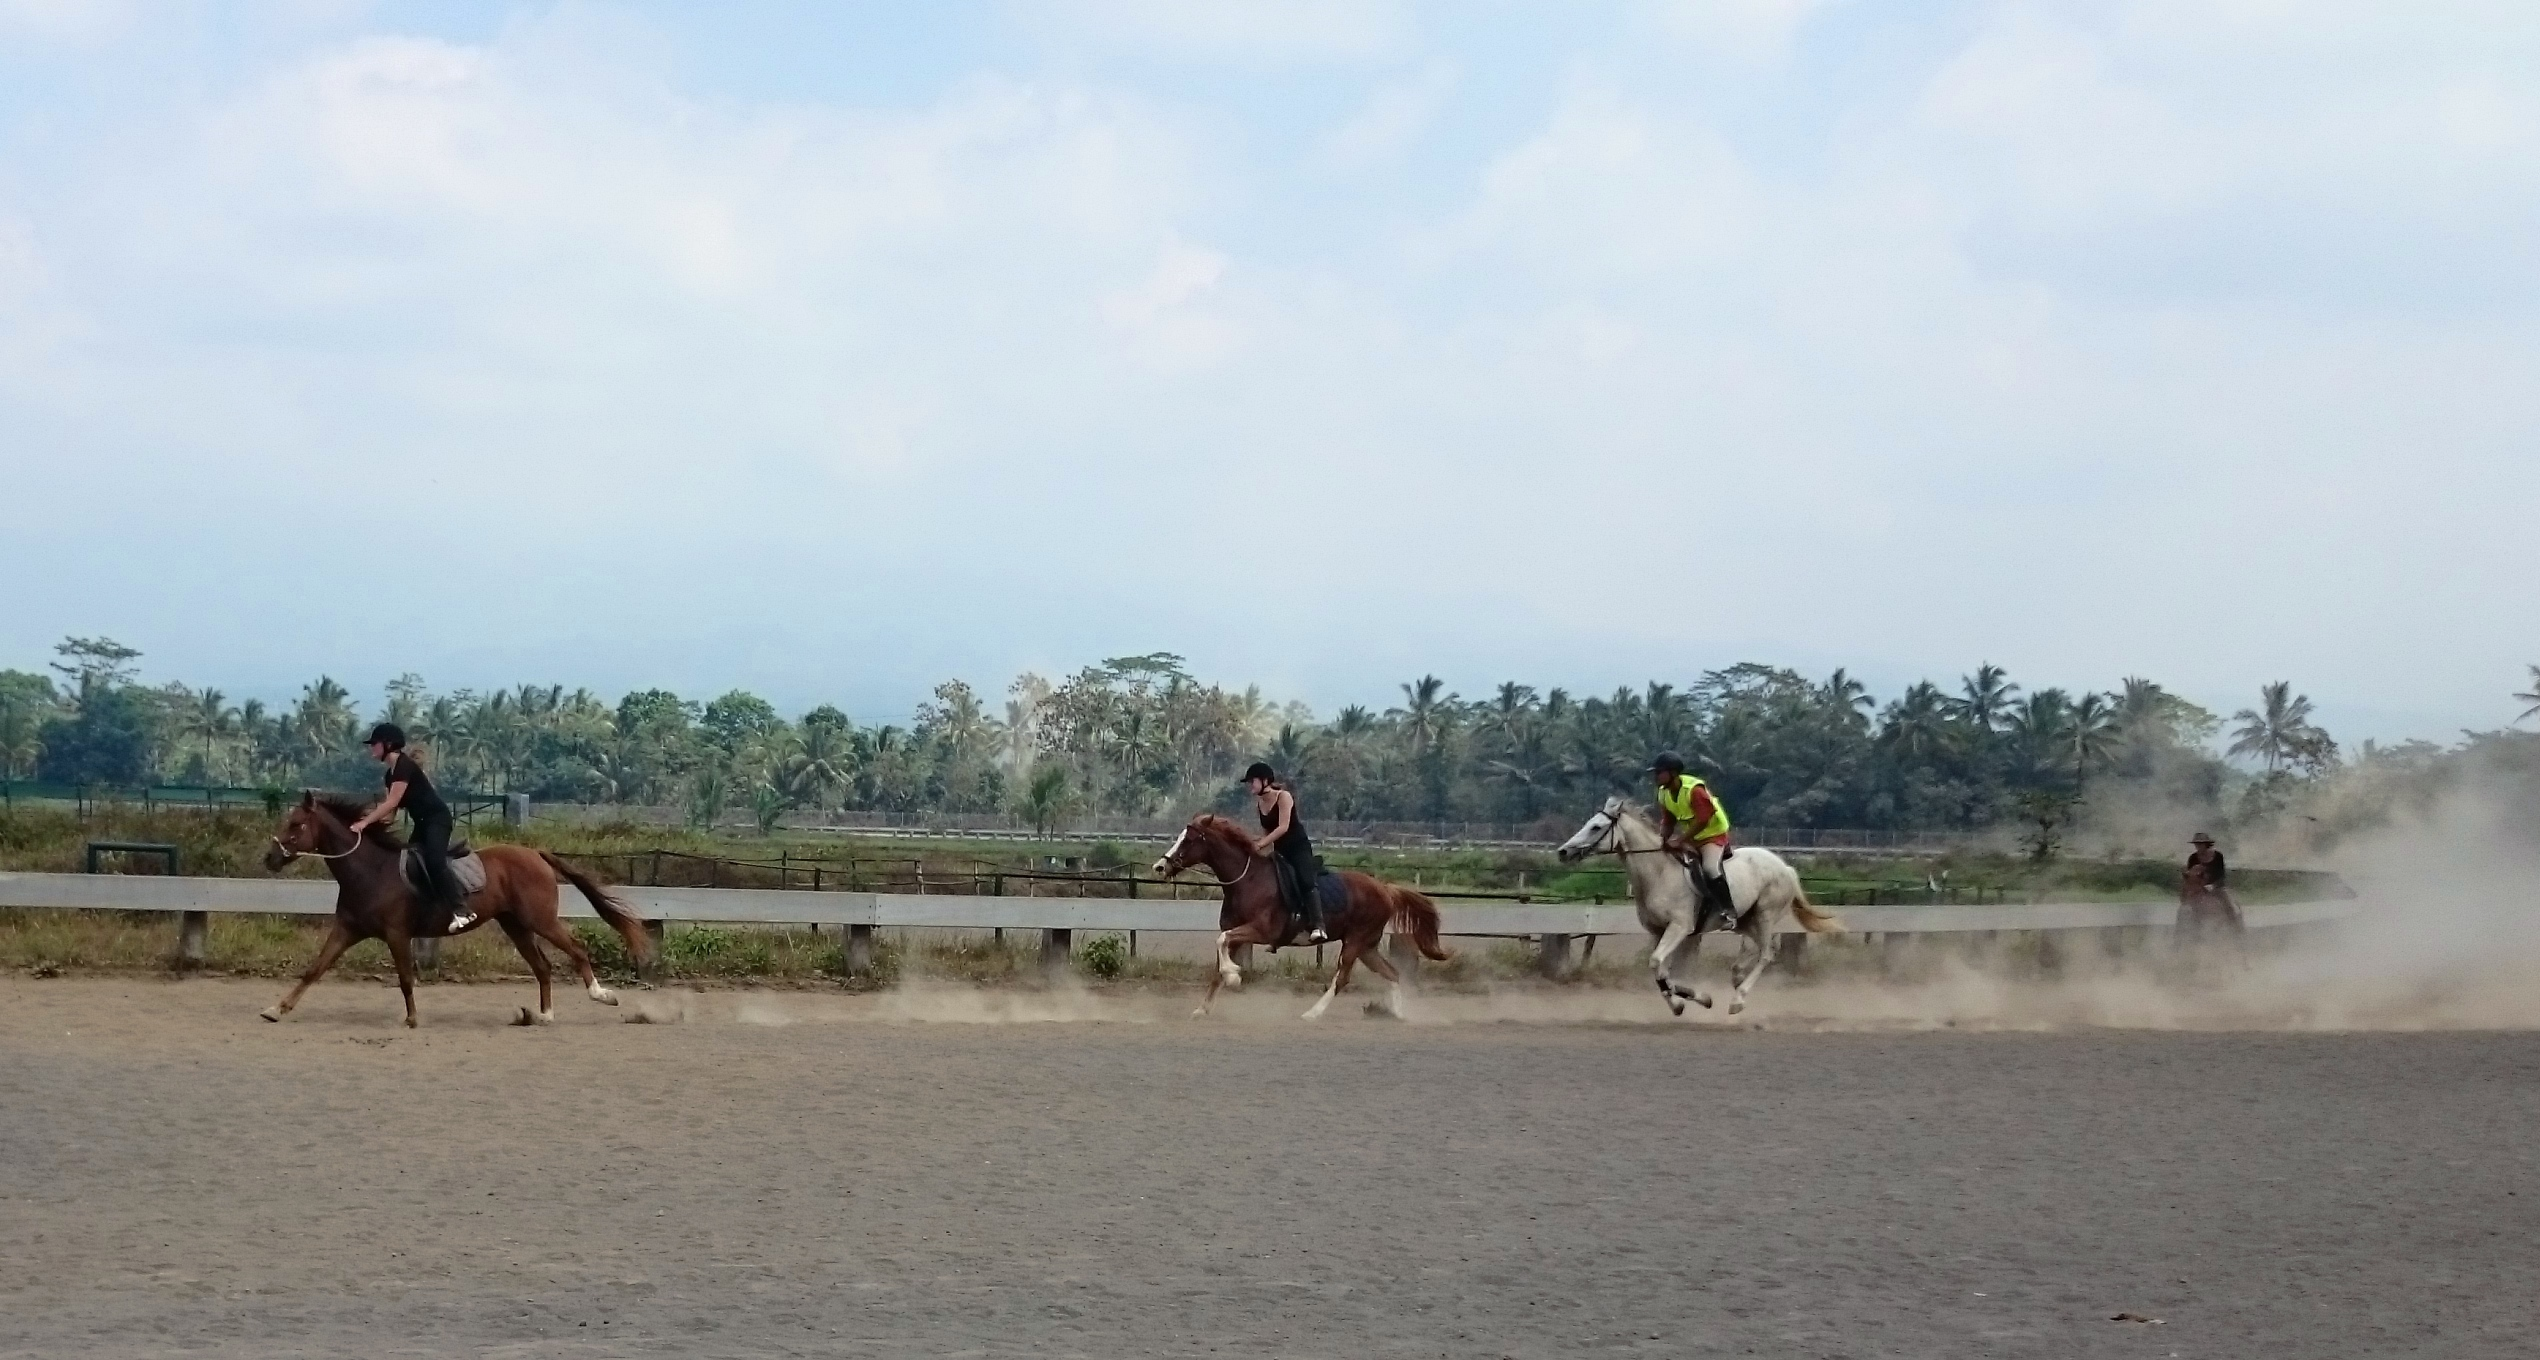 On the race track of our village Tegalwaton